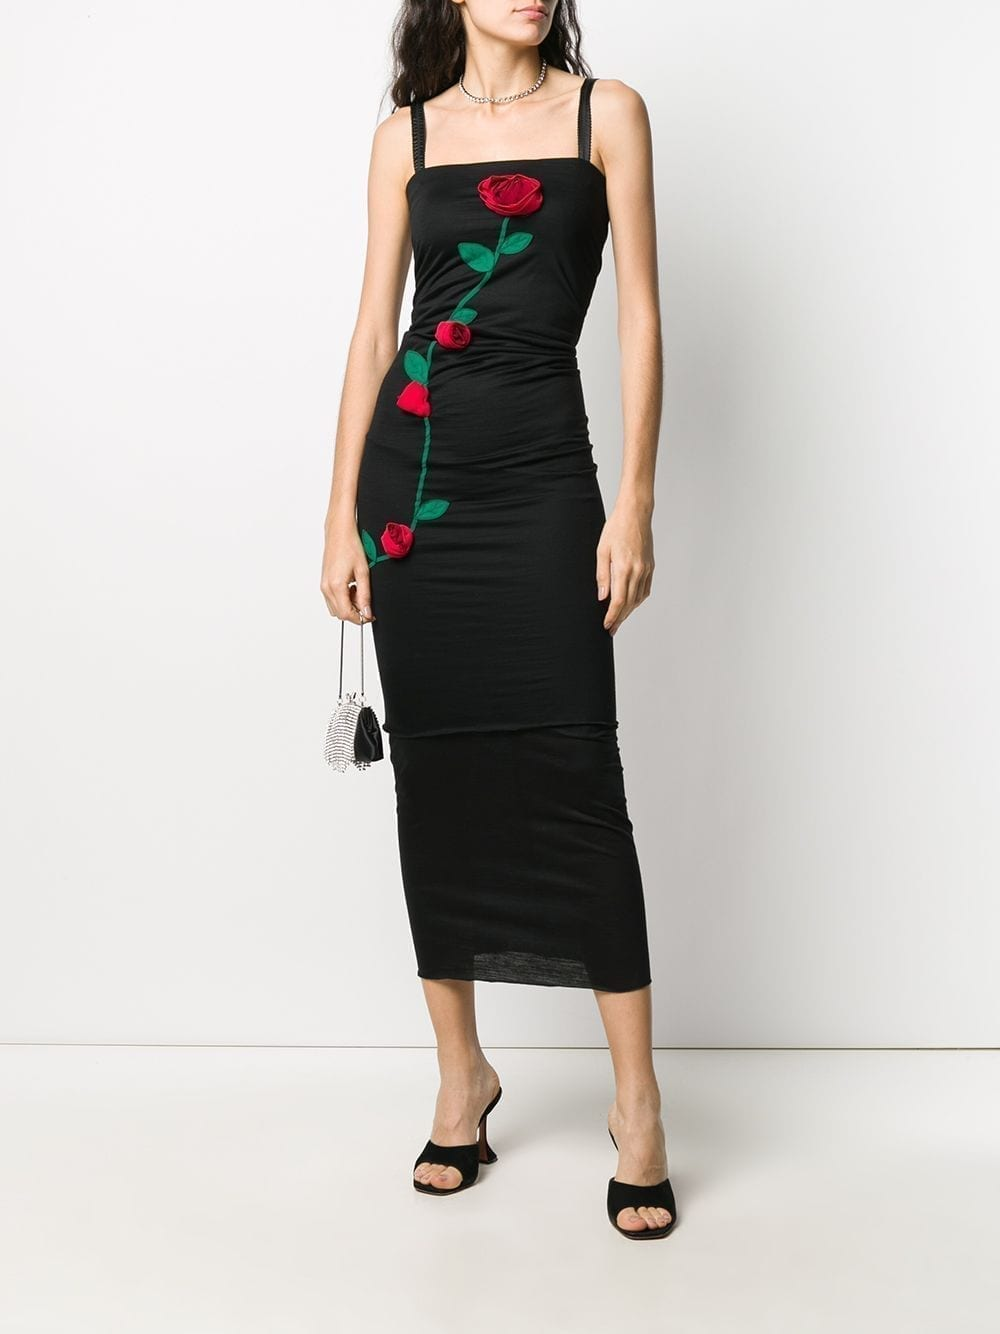 DOLCE & GABBANA Rose Applique Fitted Dress